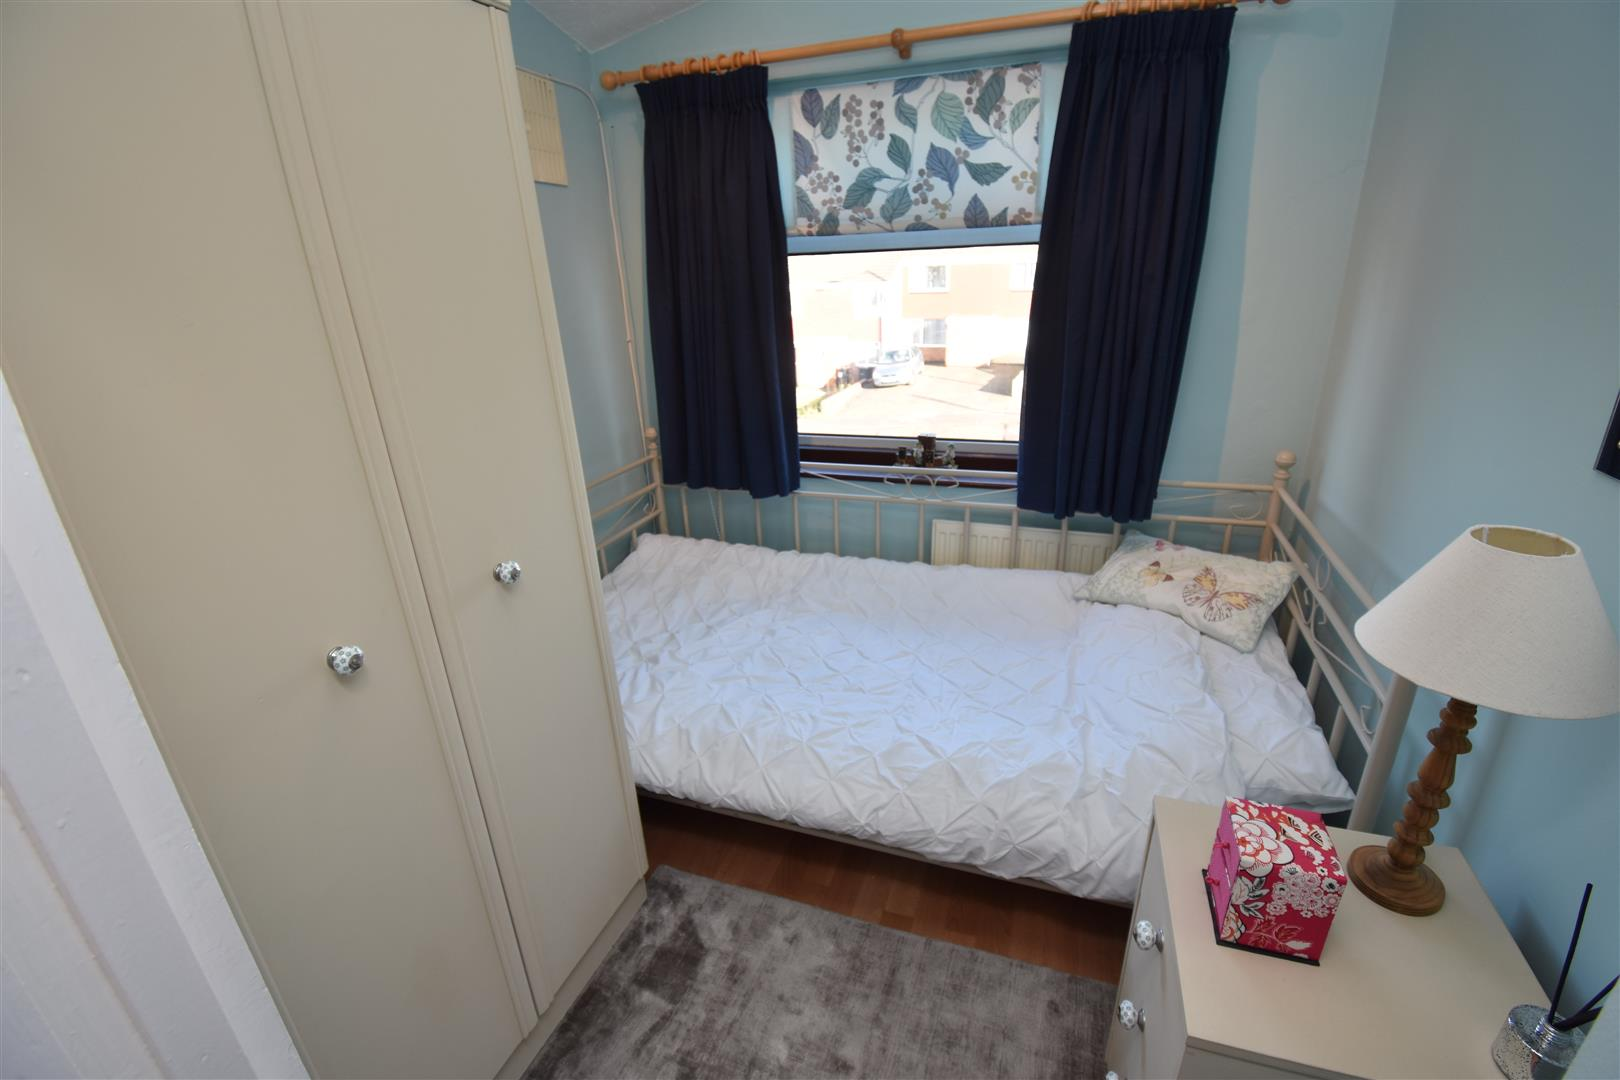 3 bed house for sale in Bromford Road, Hodge Hill, Birmingham B36 8HR 10